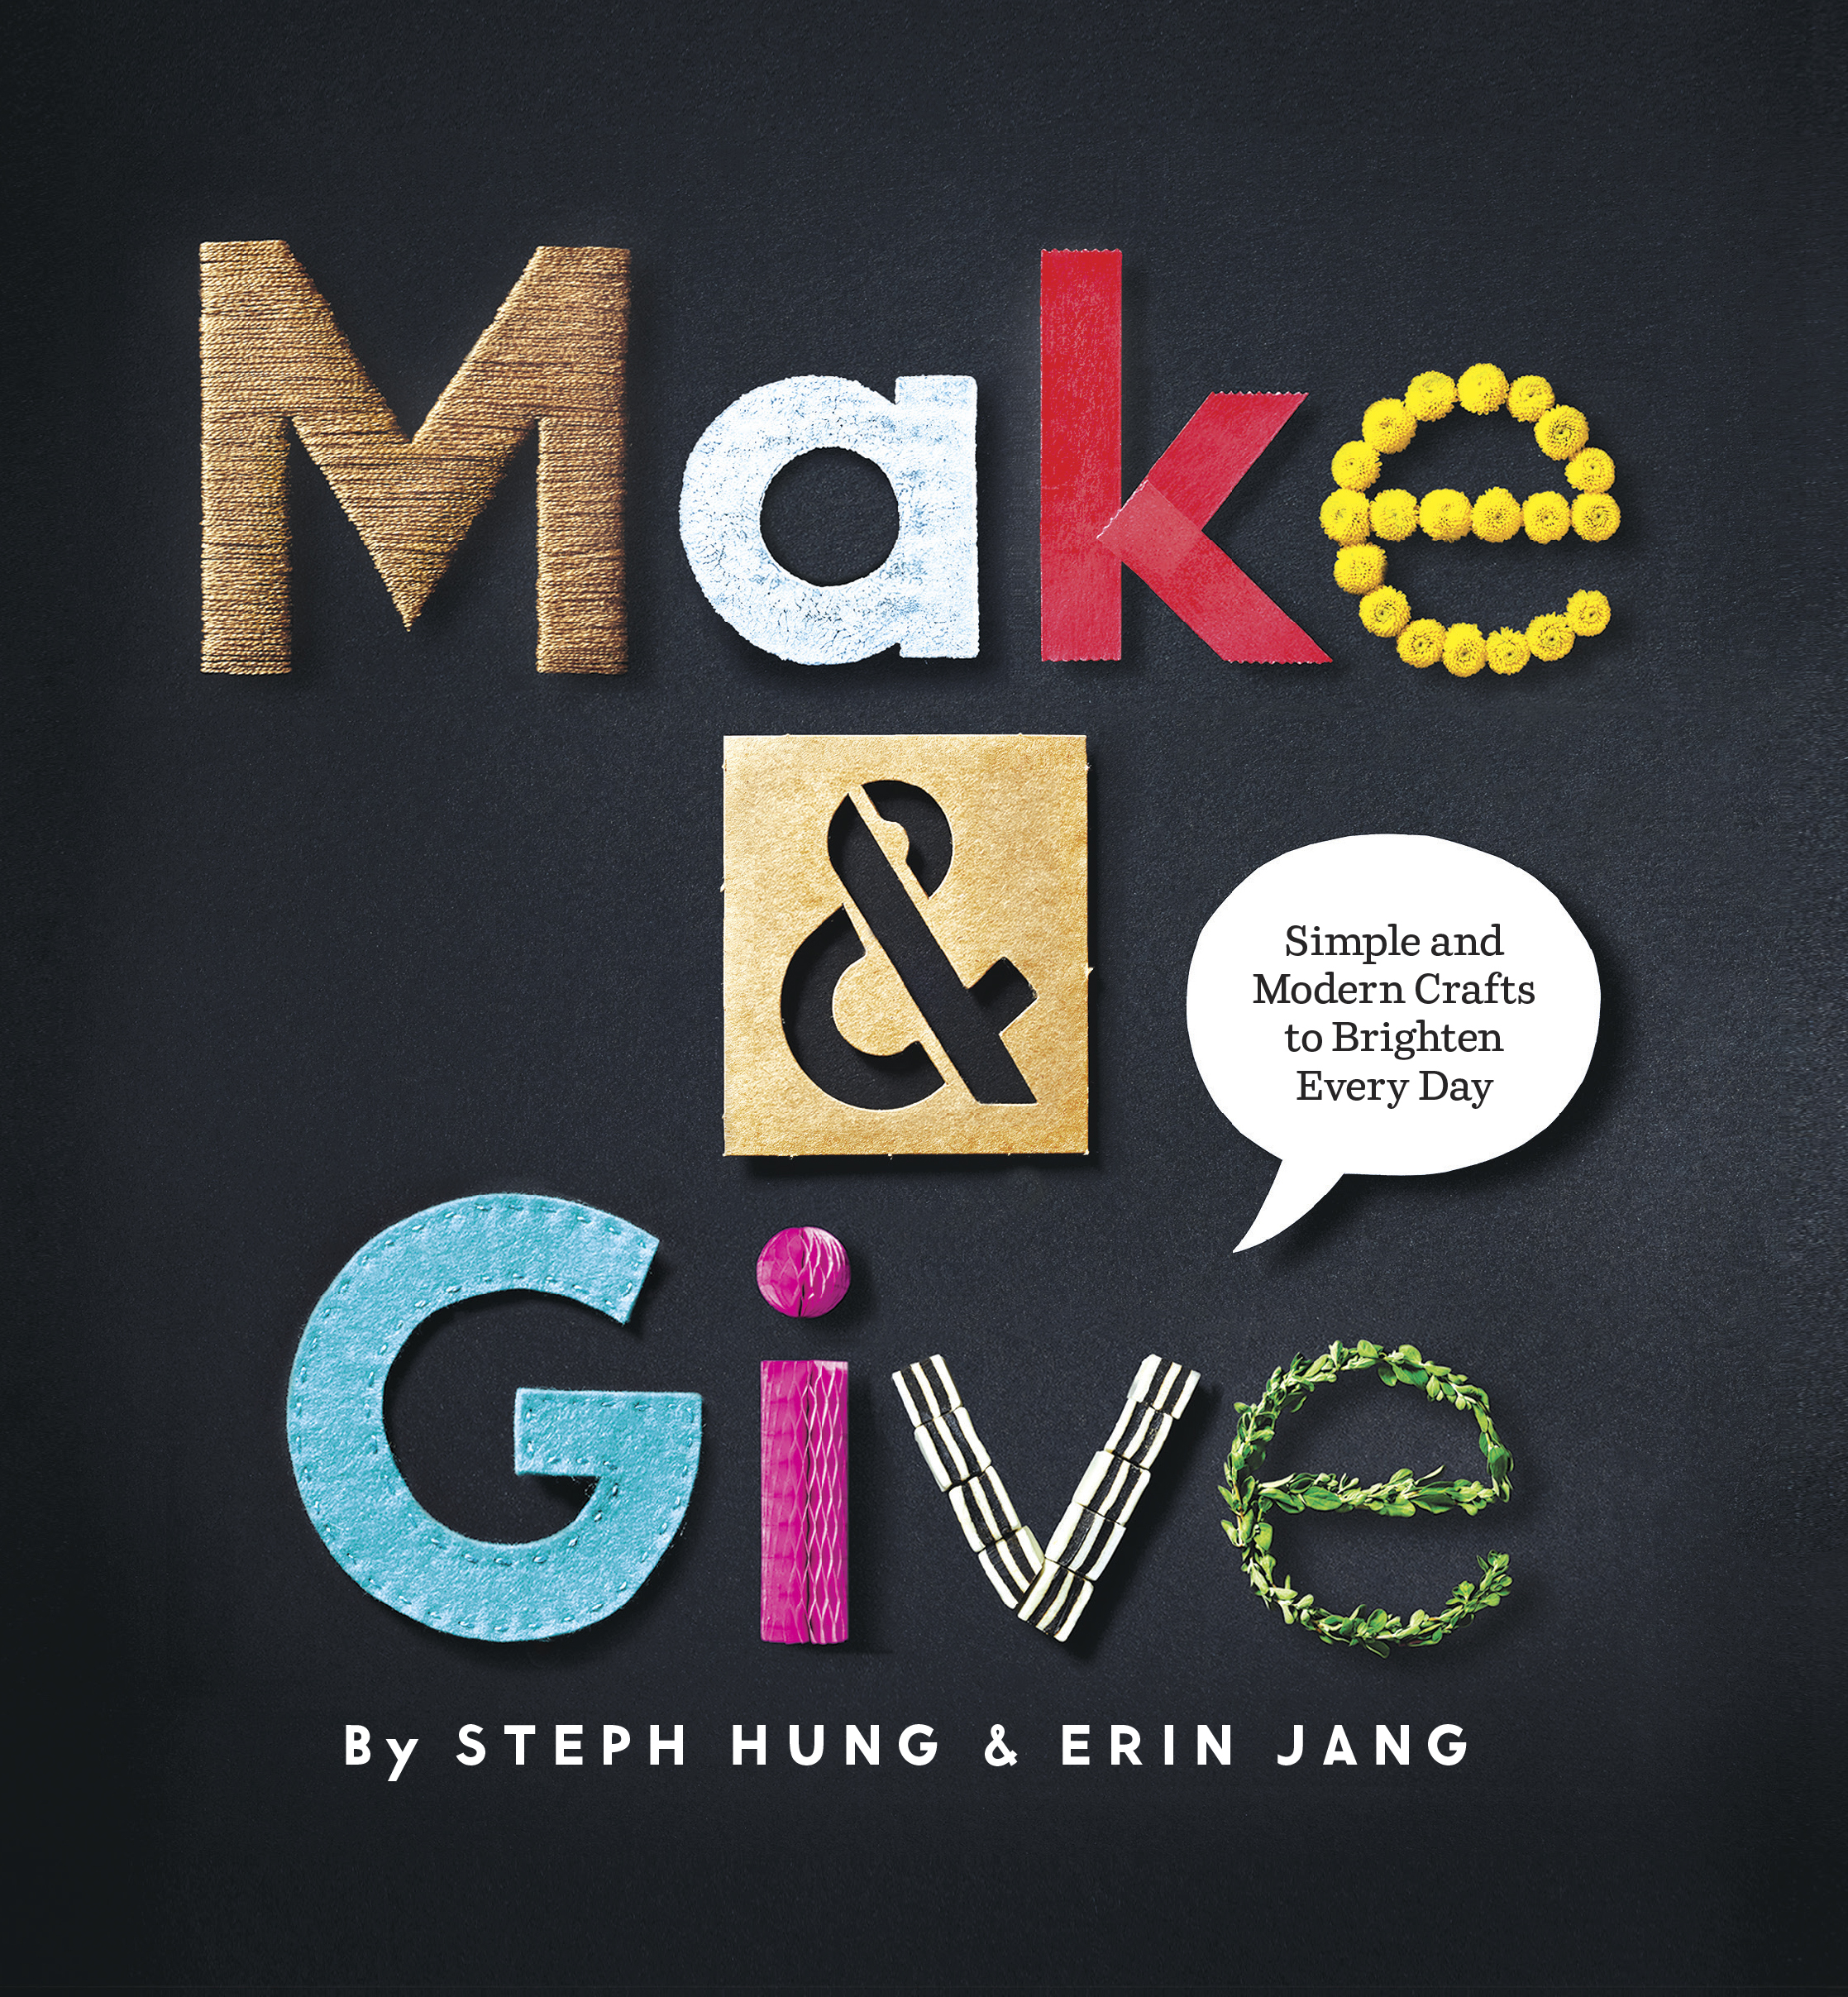 Book Launch: Make & Give by Steph Hung and Erin Jang